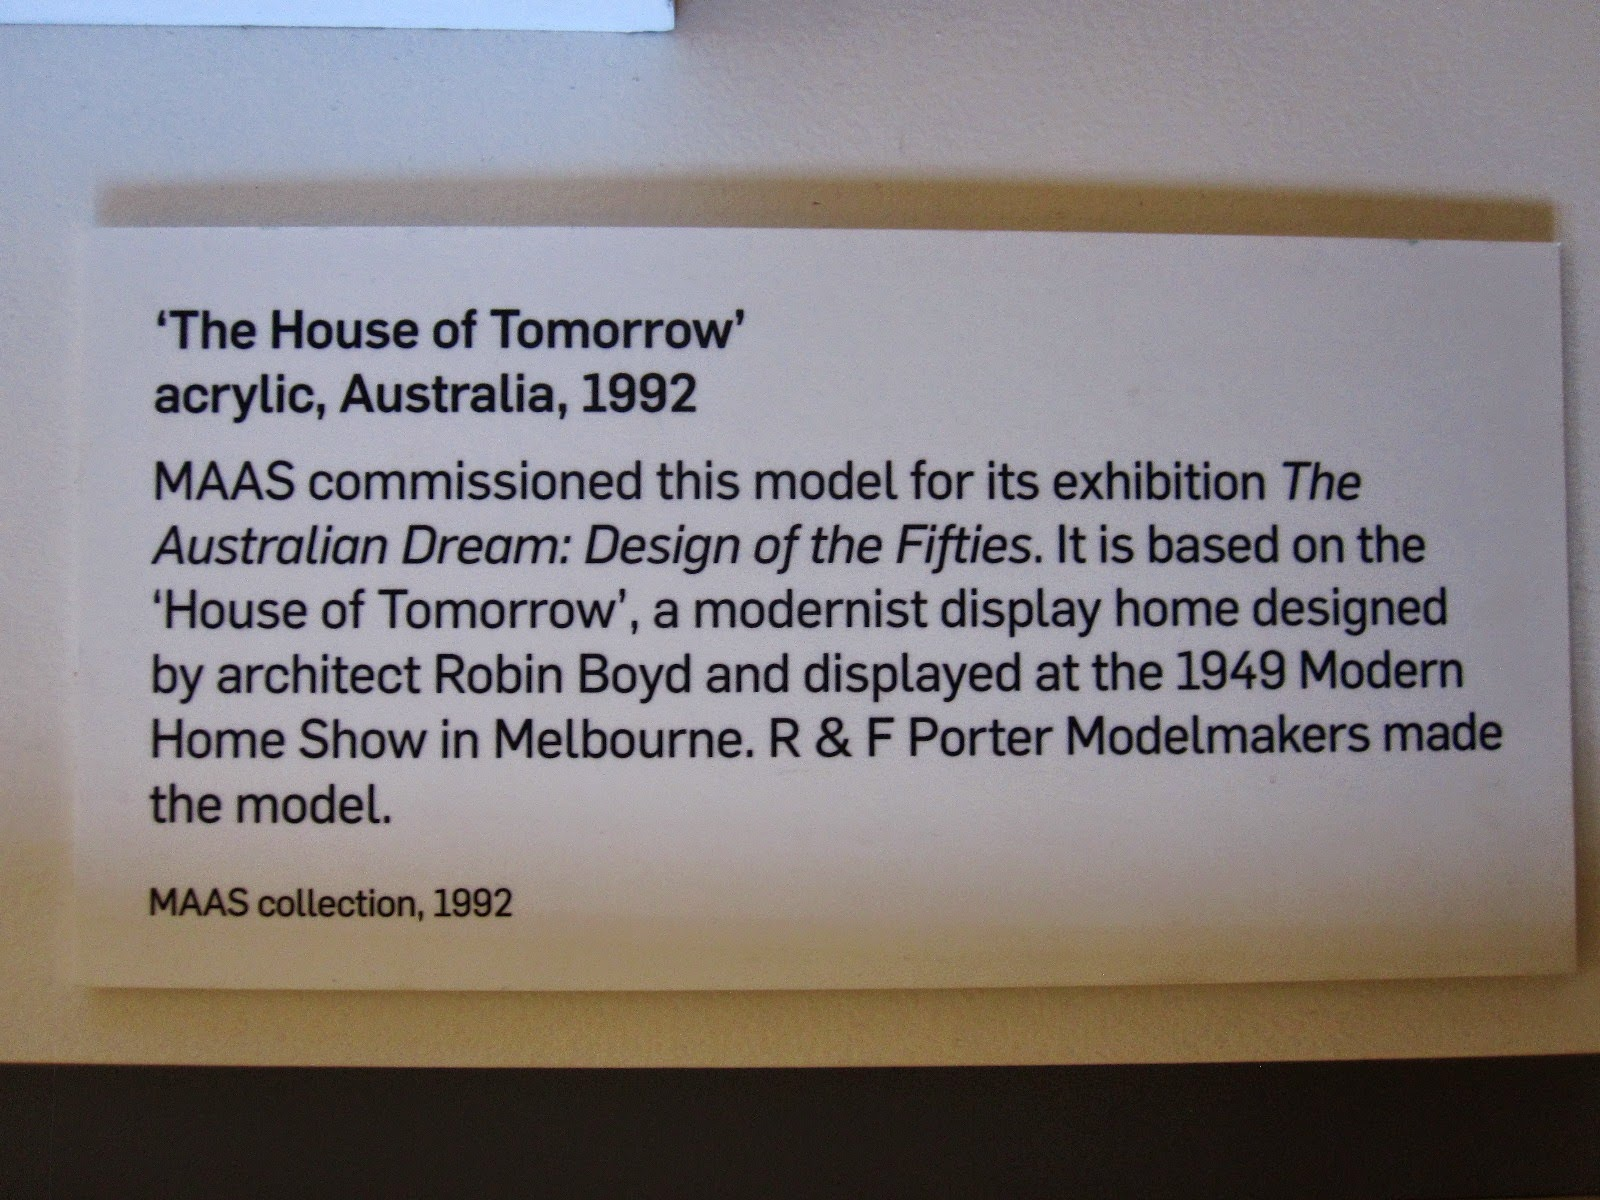 Exhibition card for the model of Robyn Boyd's House of Tomorrow.